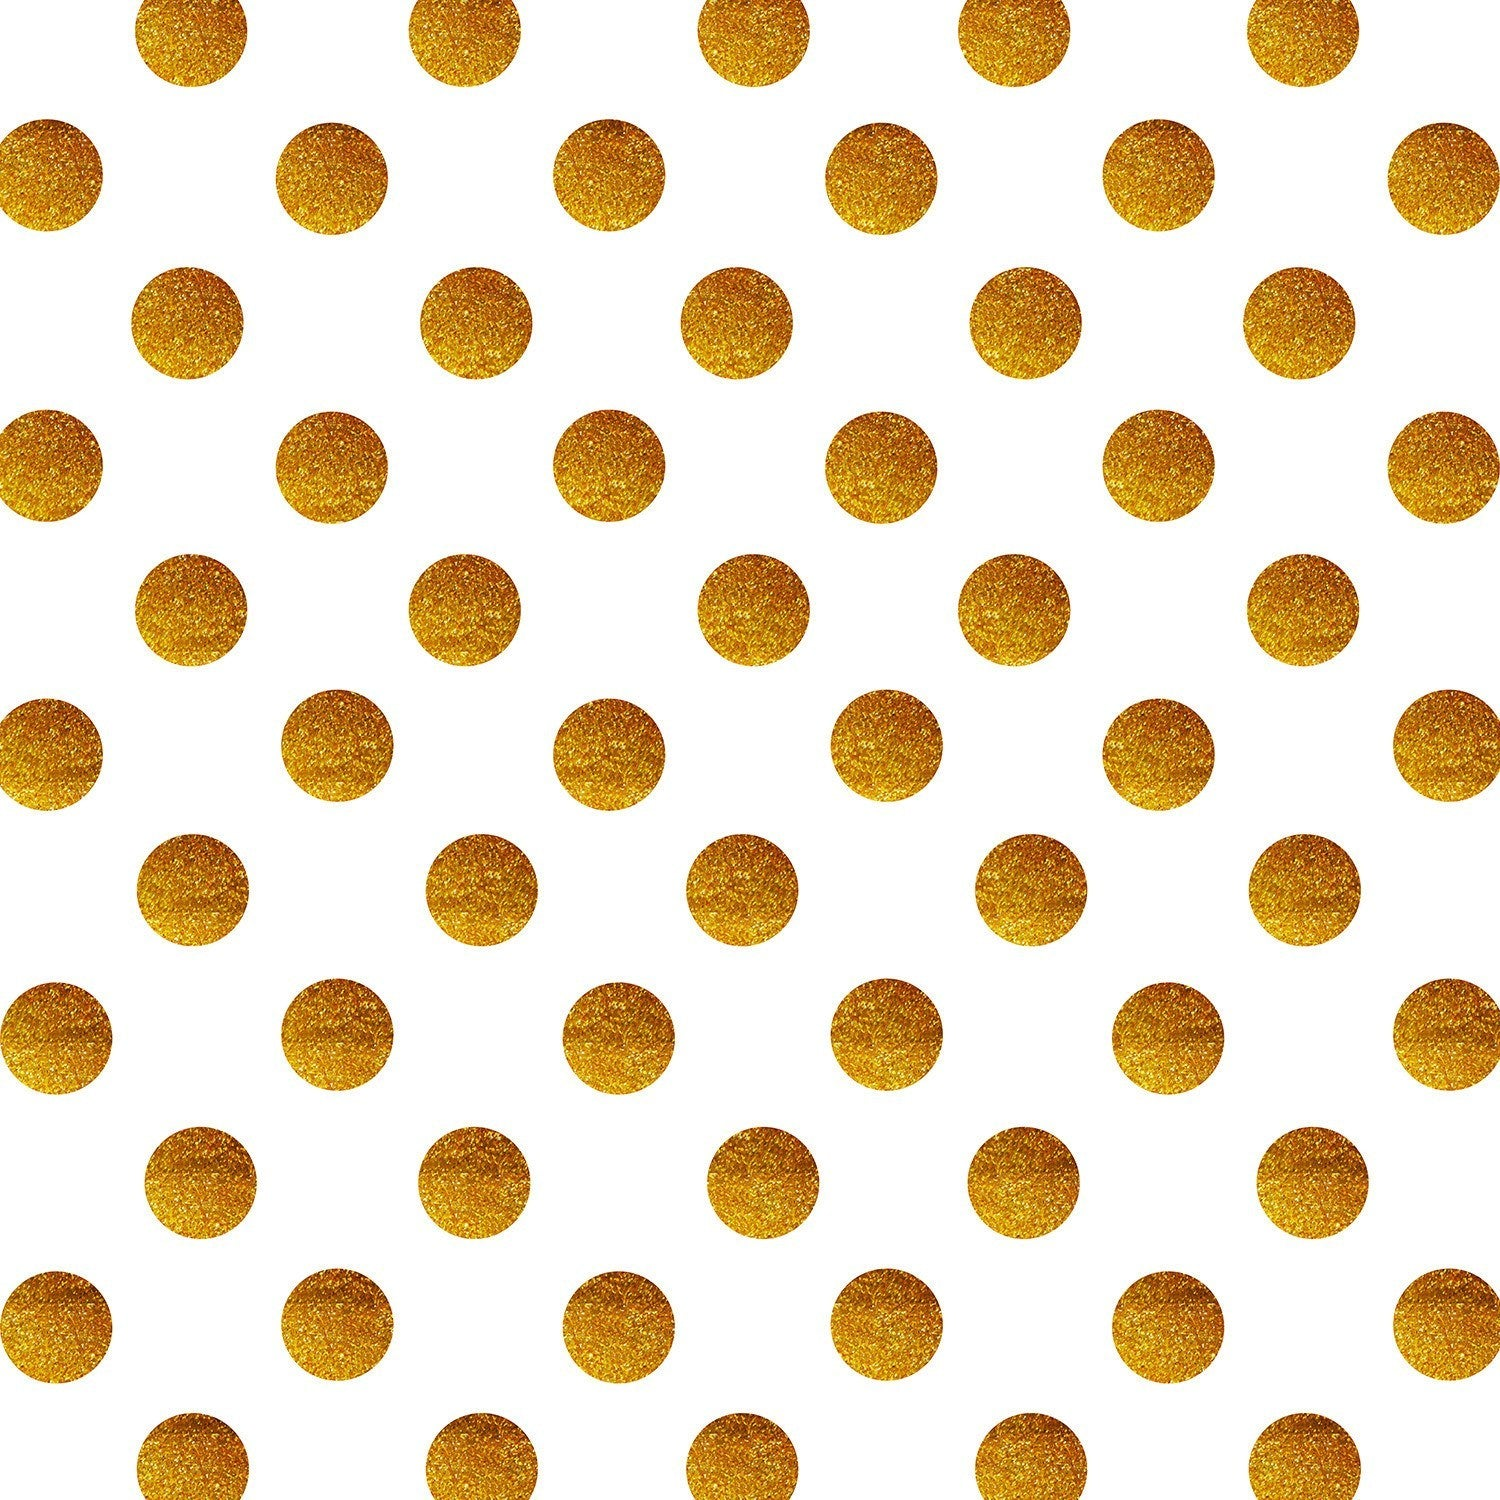 StudioPRO Vinyl Gold Glitter Dots Party Backdrop - (Choose Size) -